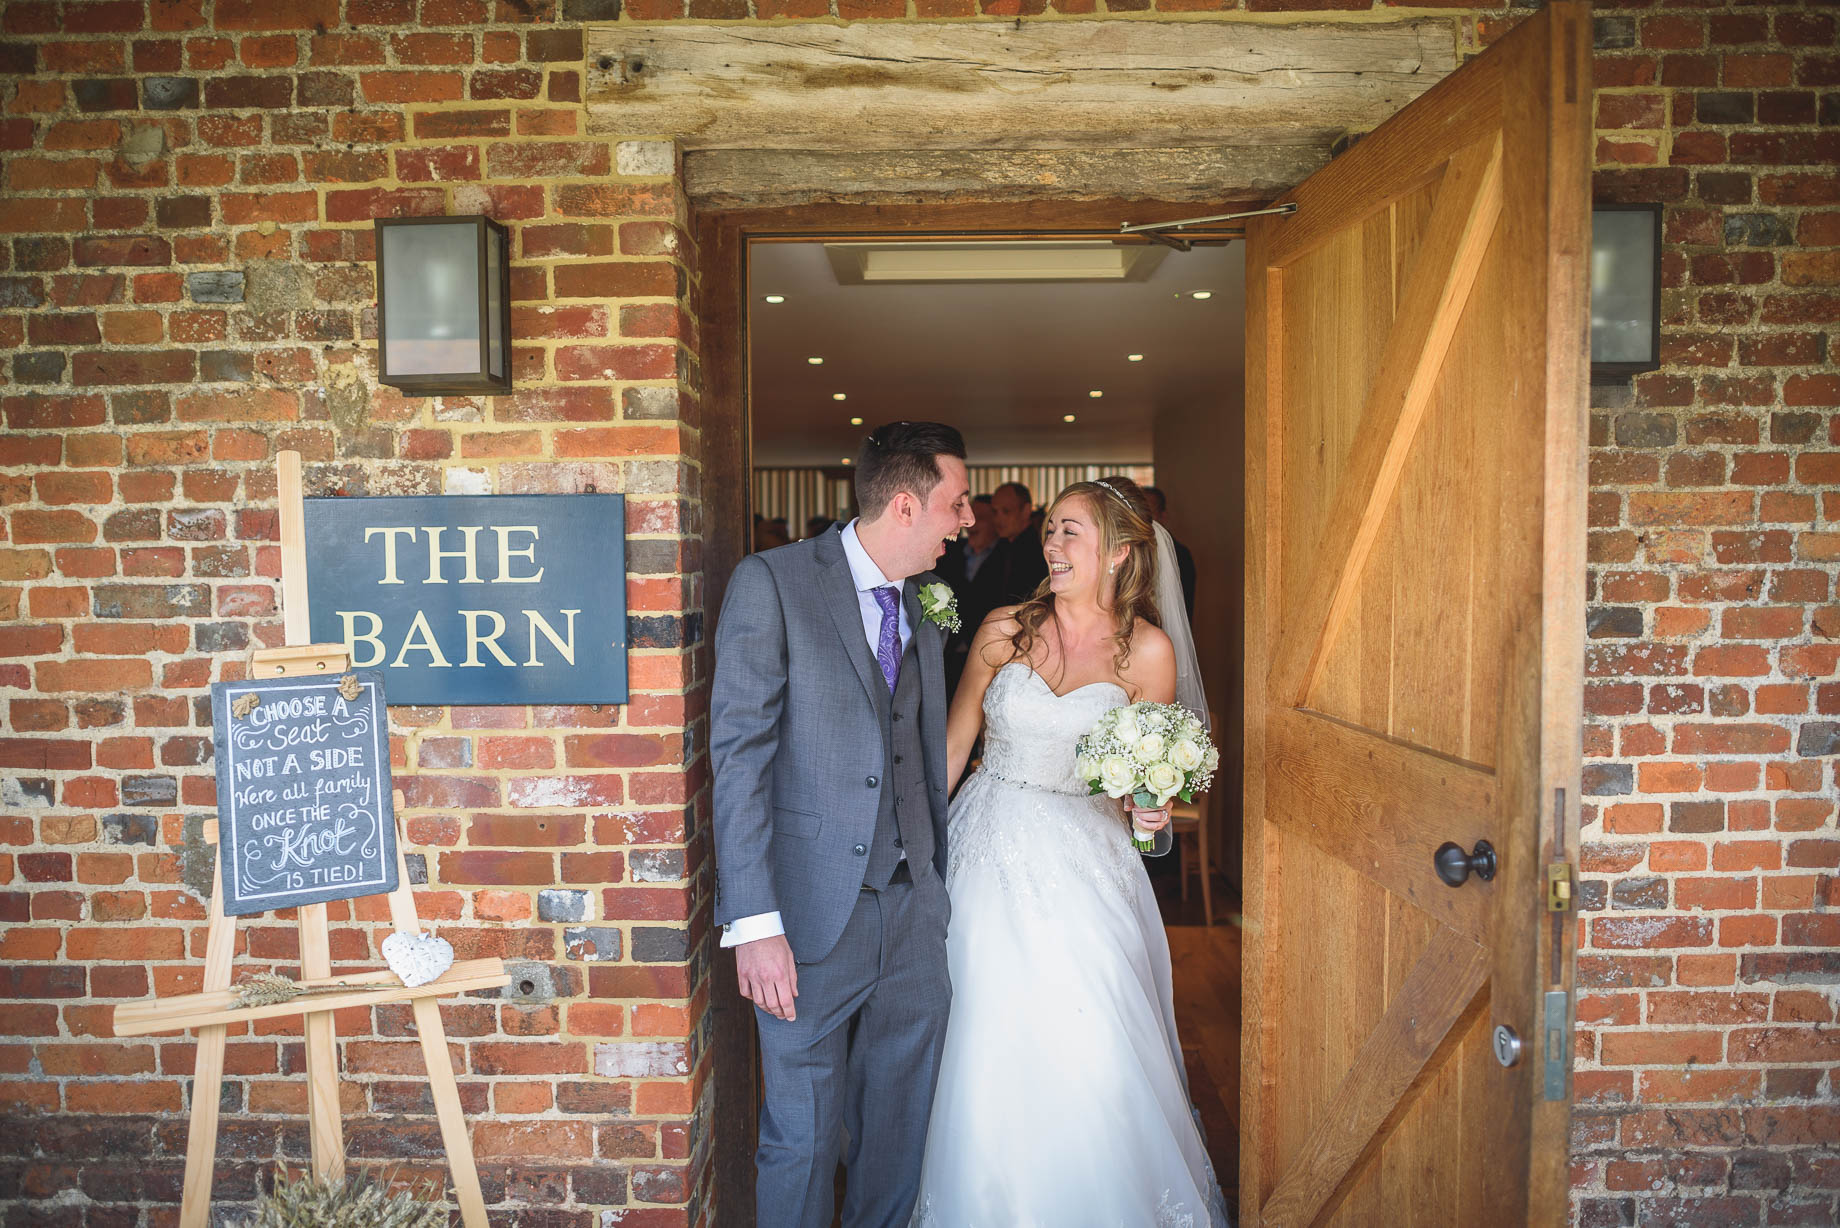 Bury Court Barn wedding photography - Guy Collier - Kirsty and Lewis (68 of 150)